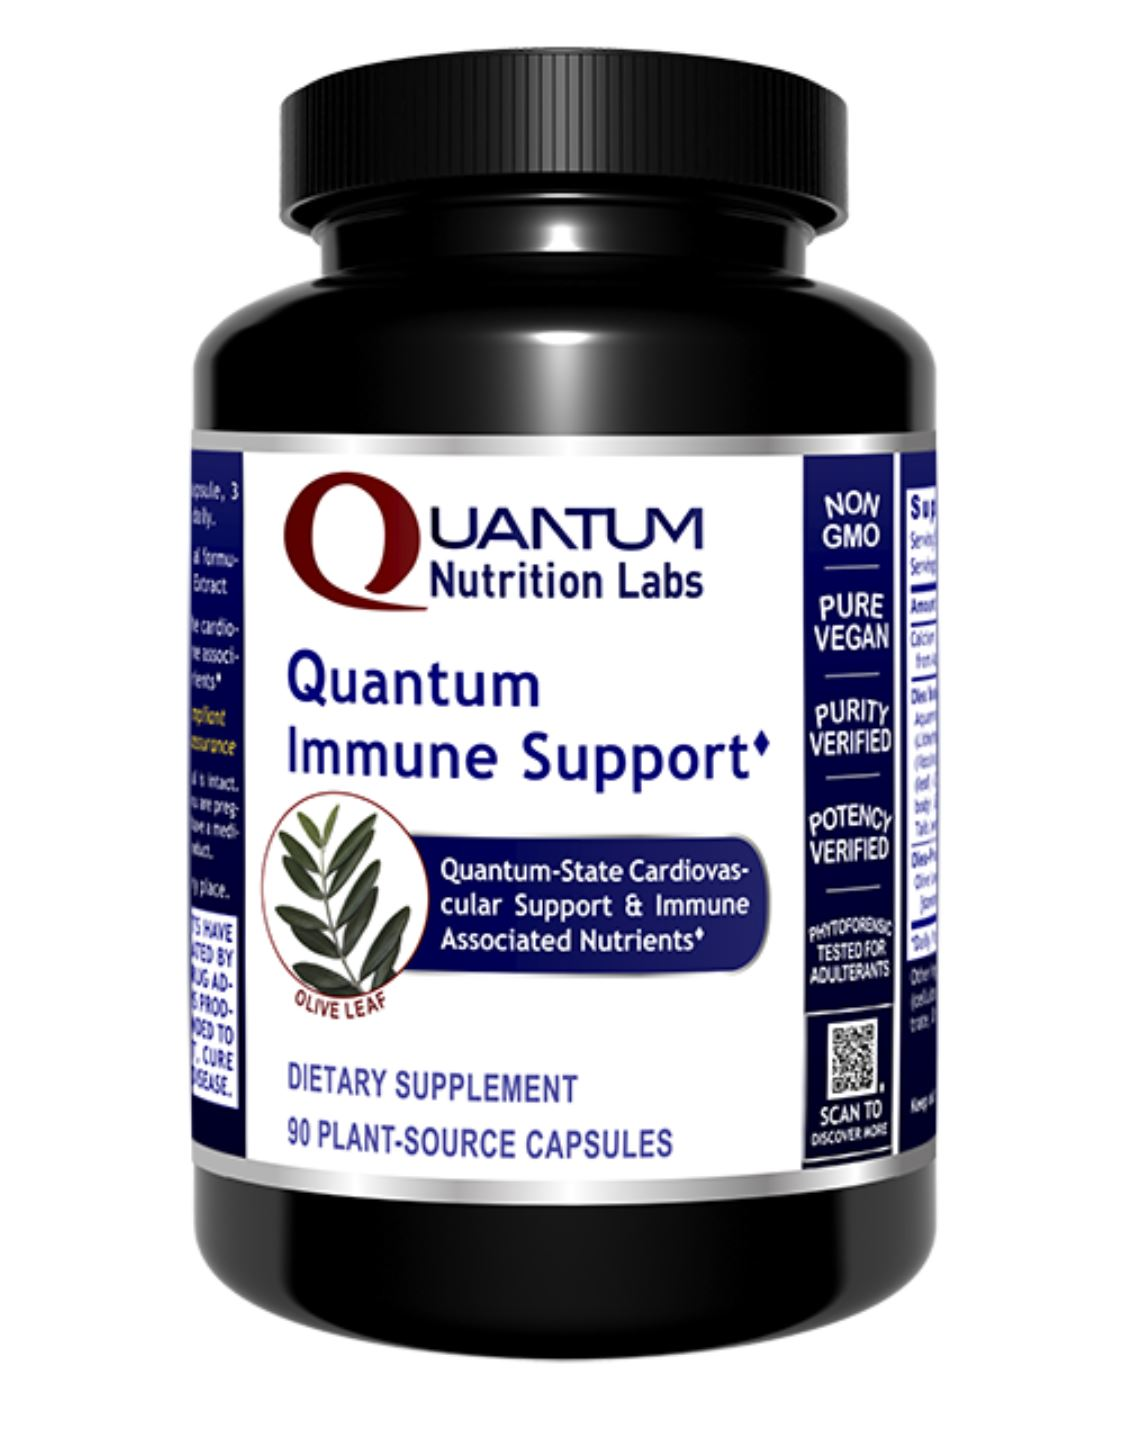 Quantum Immune Support Review